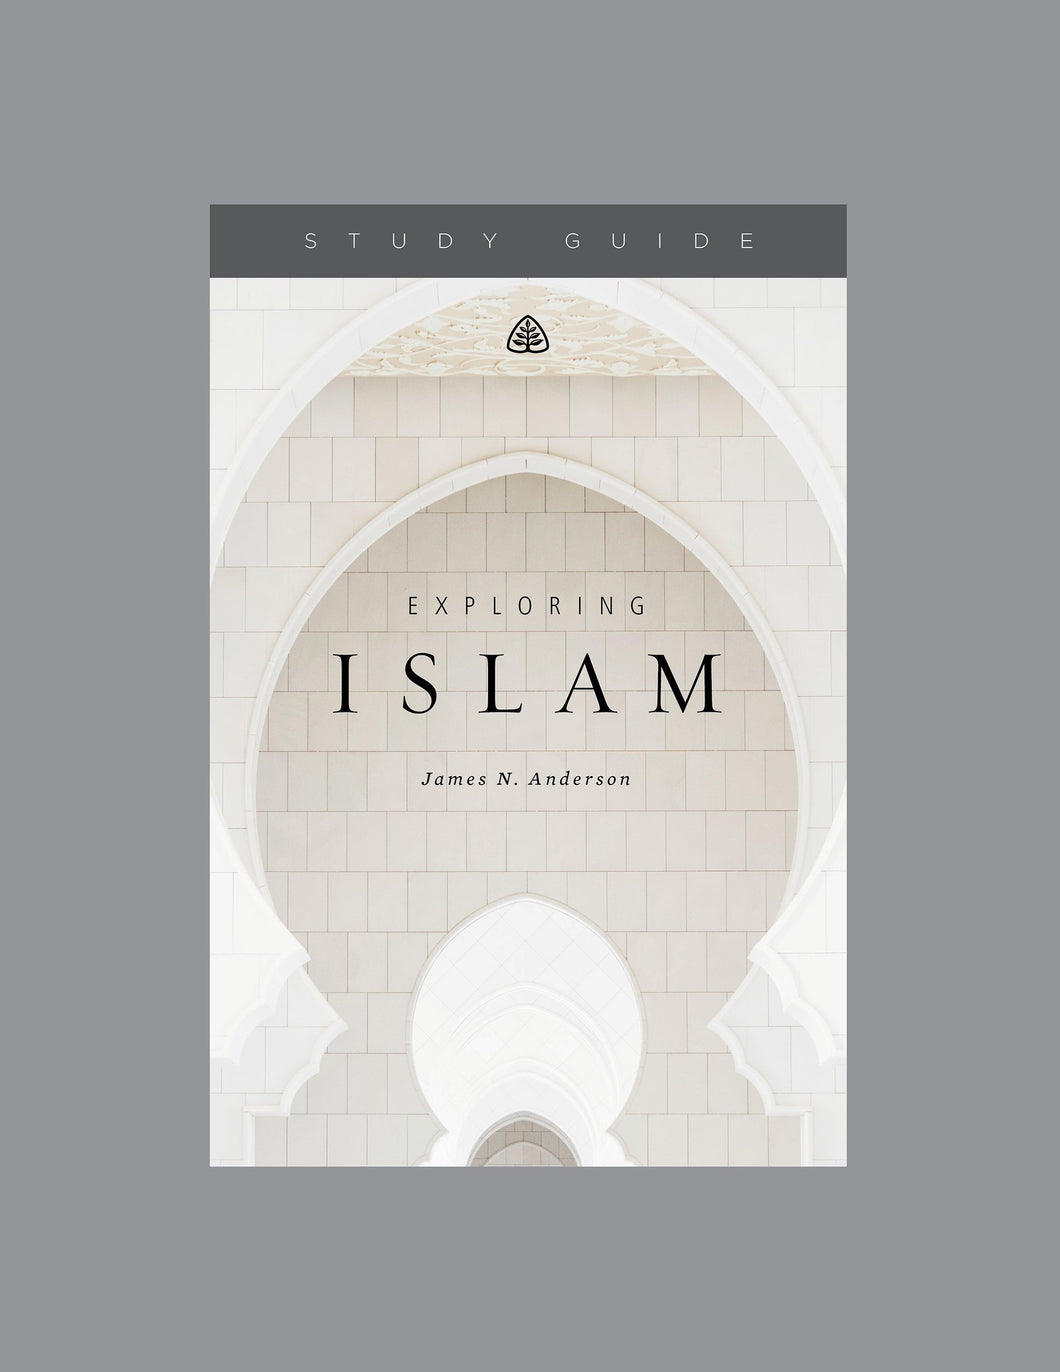 Exploring Islam — Download Study Guide PDF (1 License)